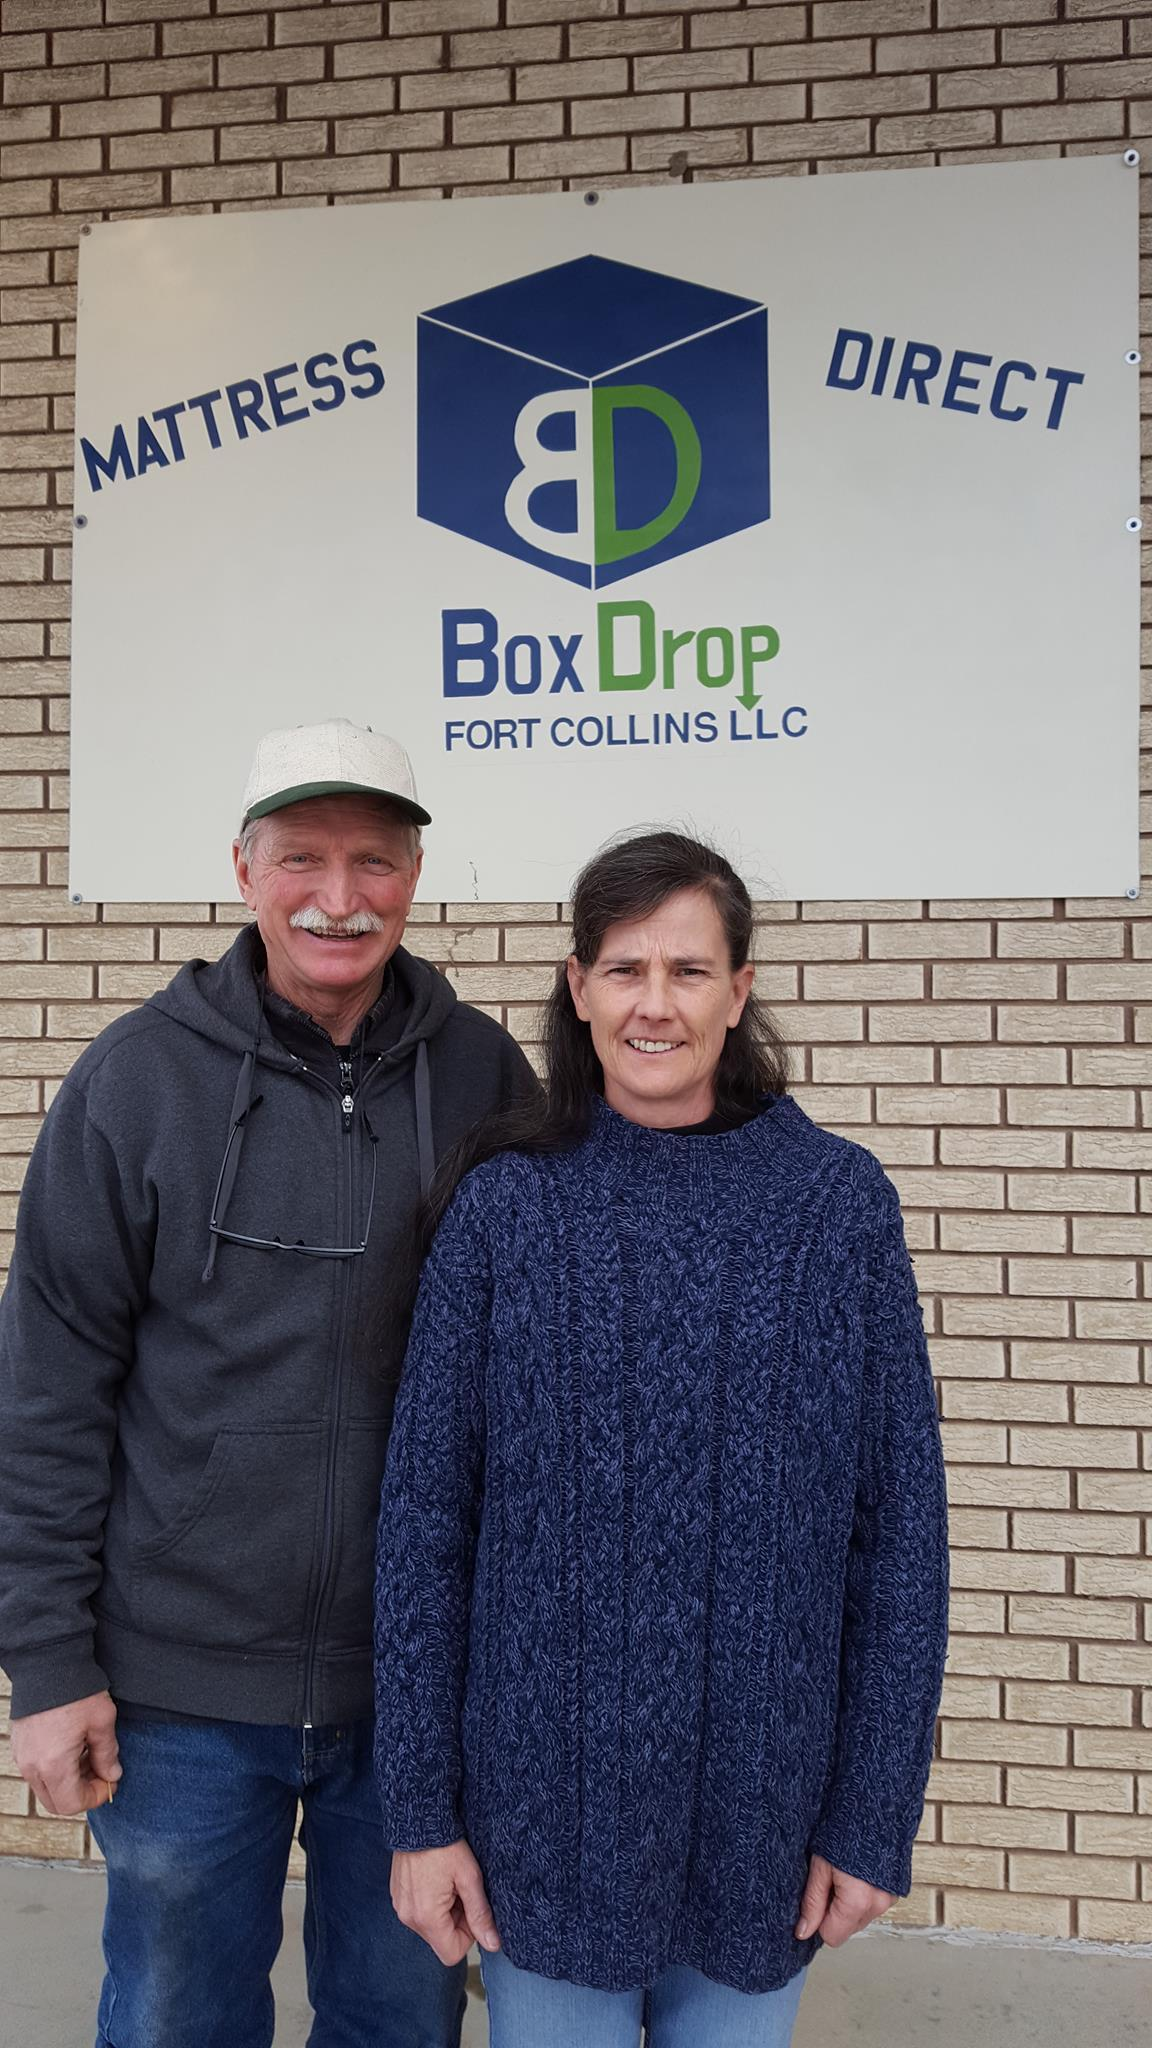 BoxDrop Fort Collins LLC